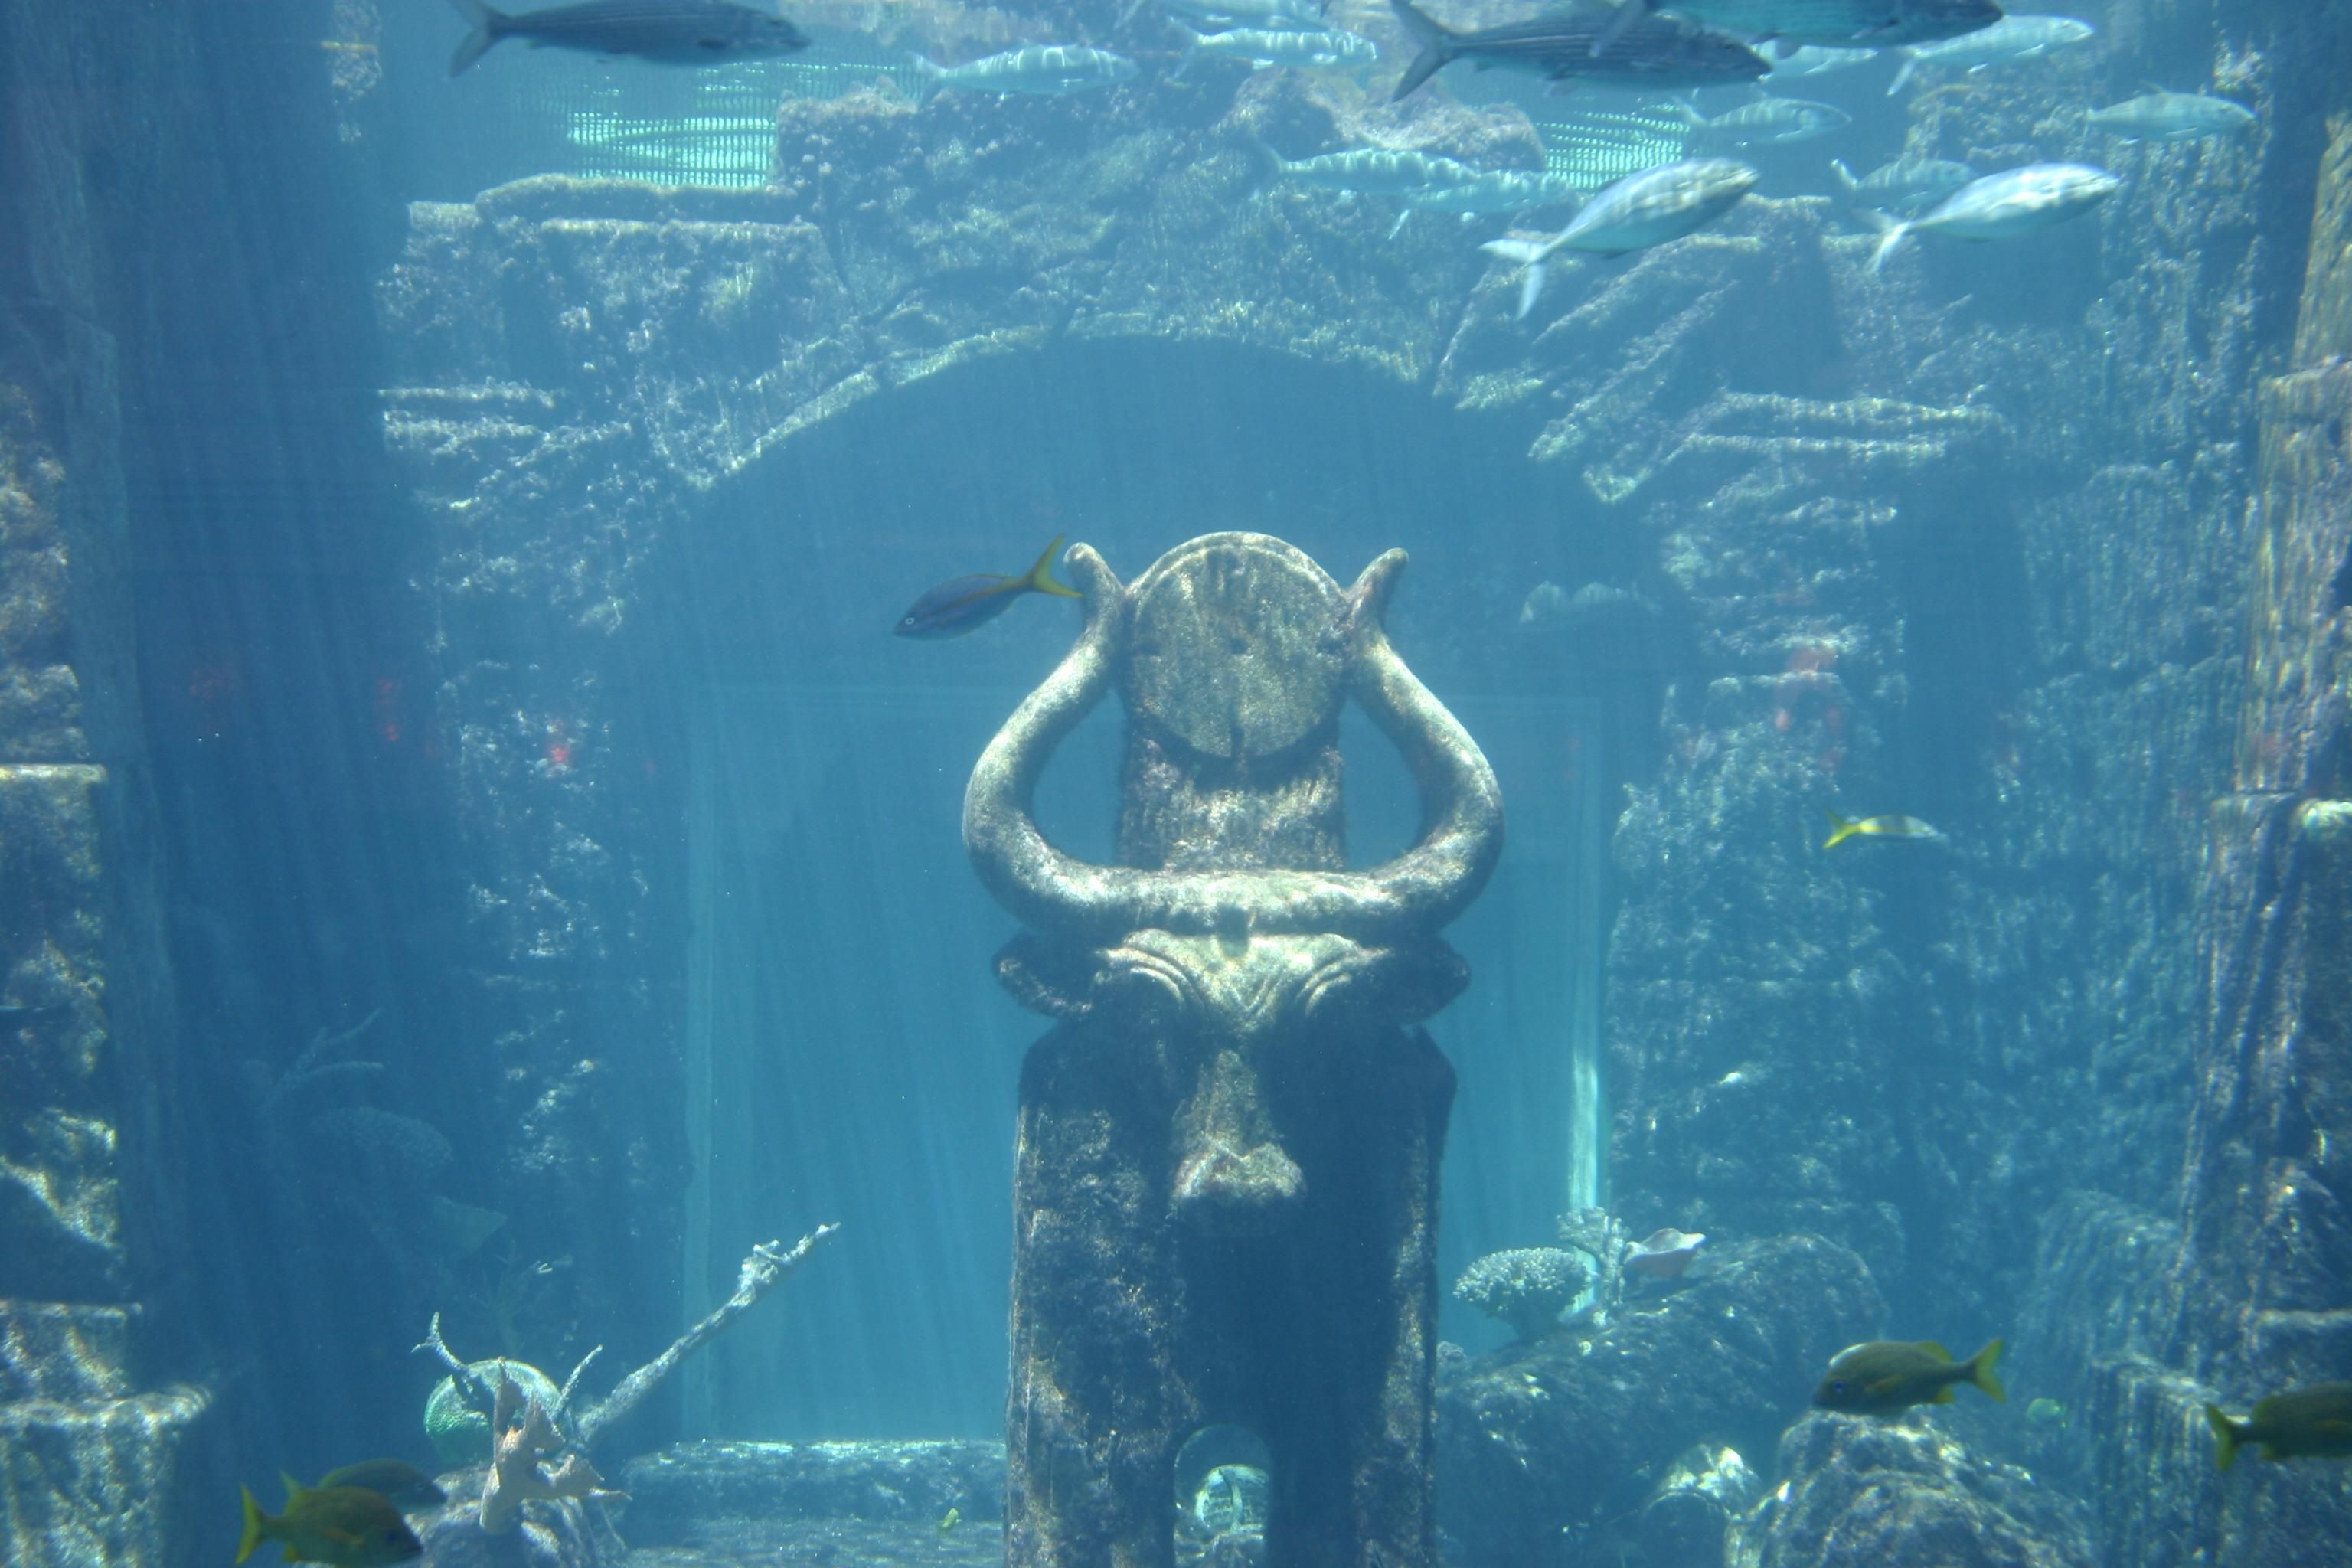 Lost Cities Found Underwater With Images Underwater Sculpture Lost City Of Atlantis Underwater City